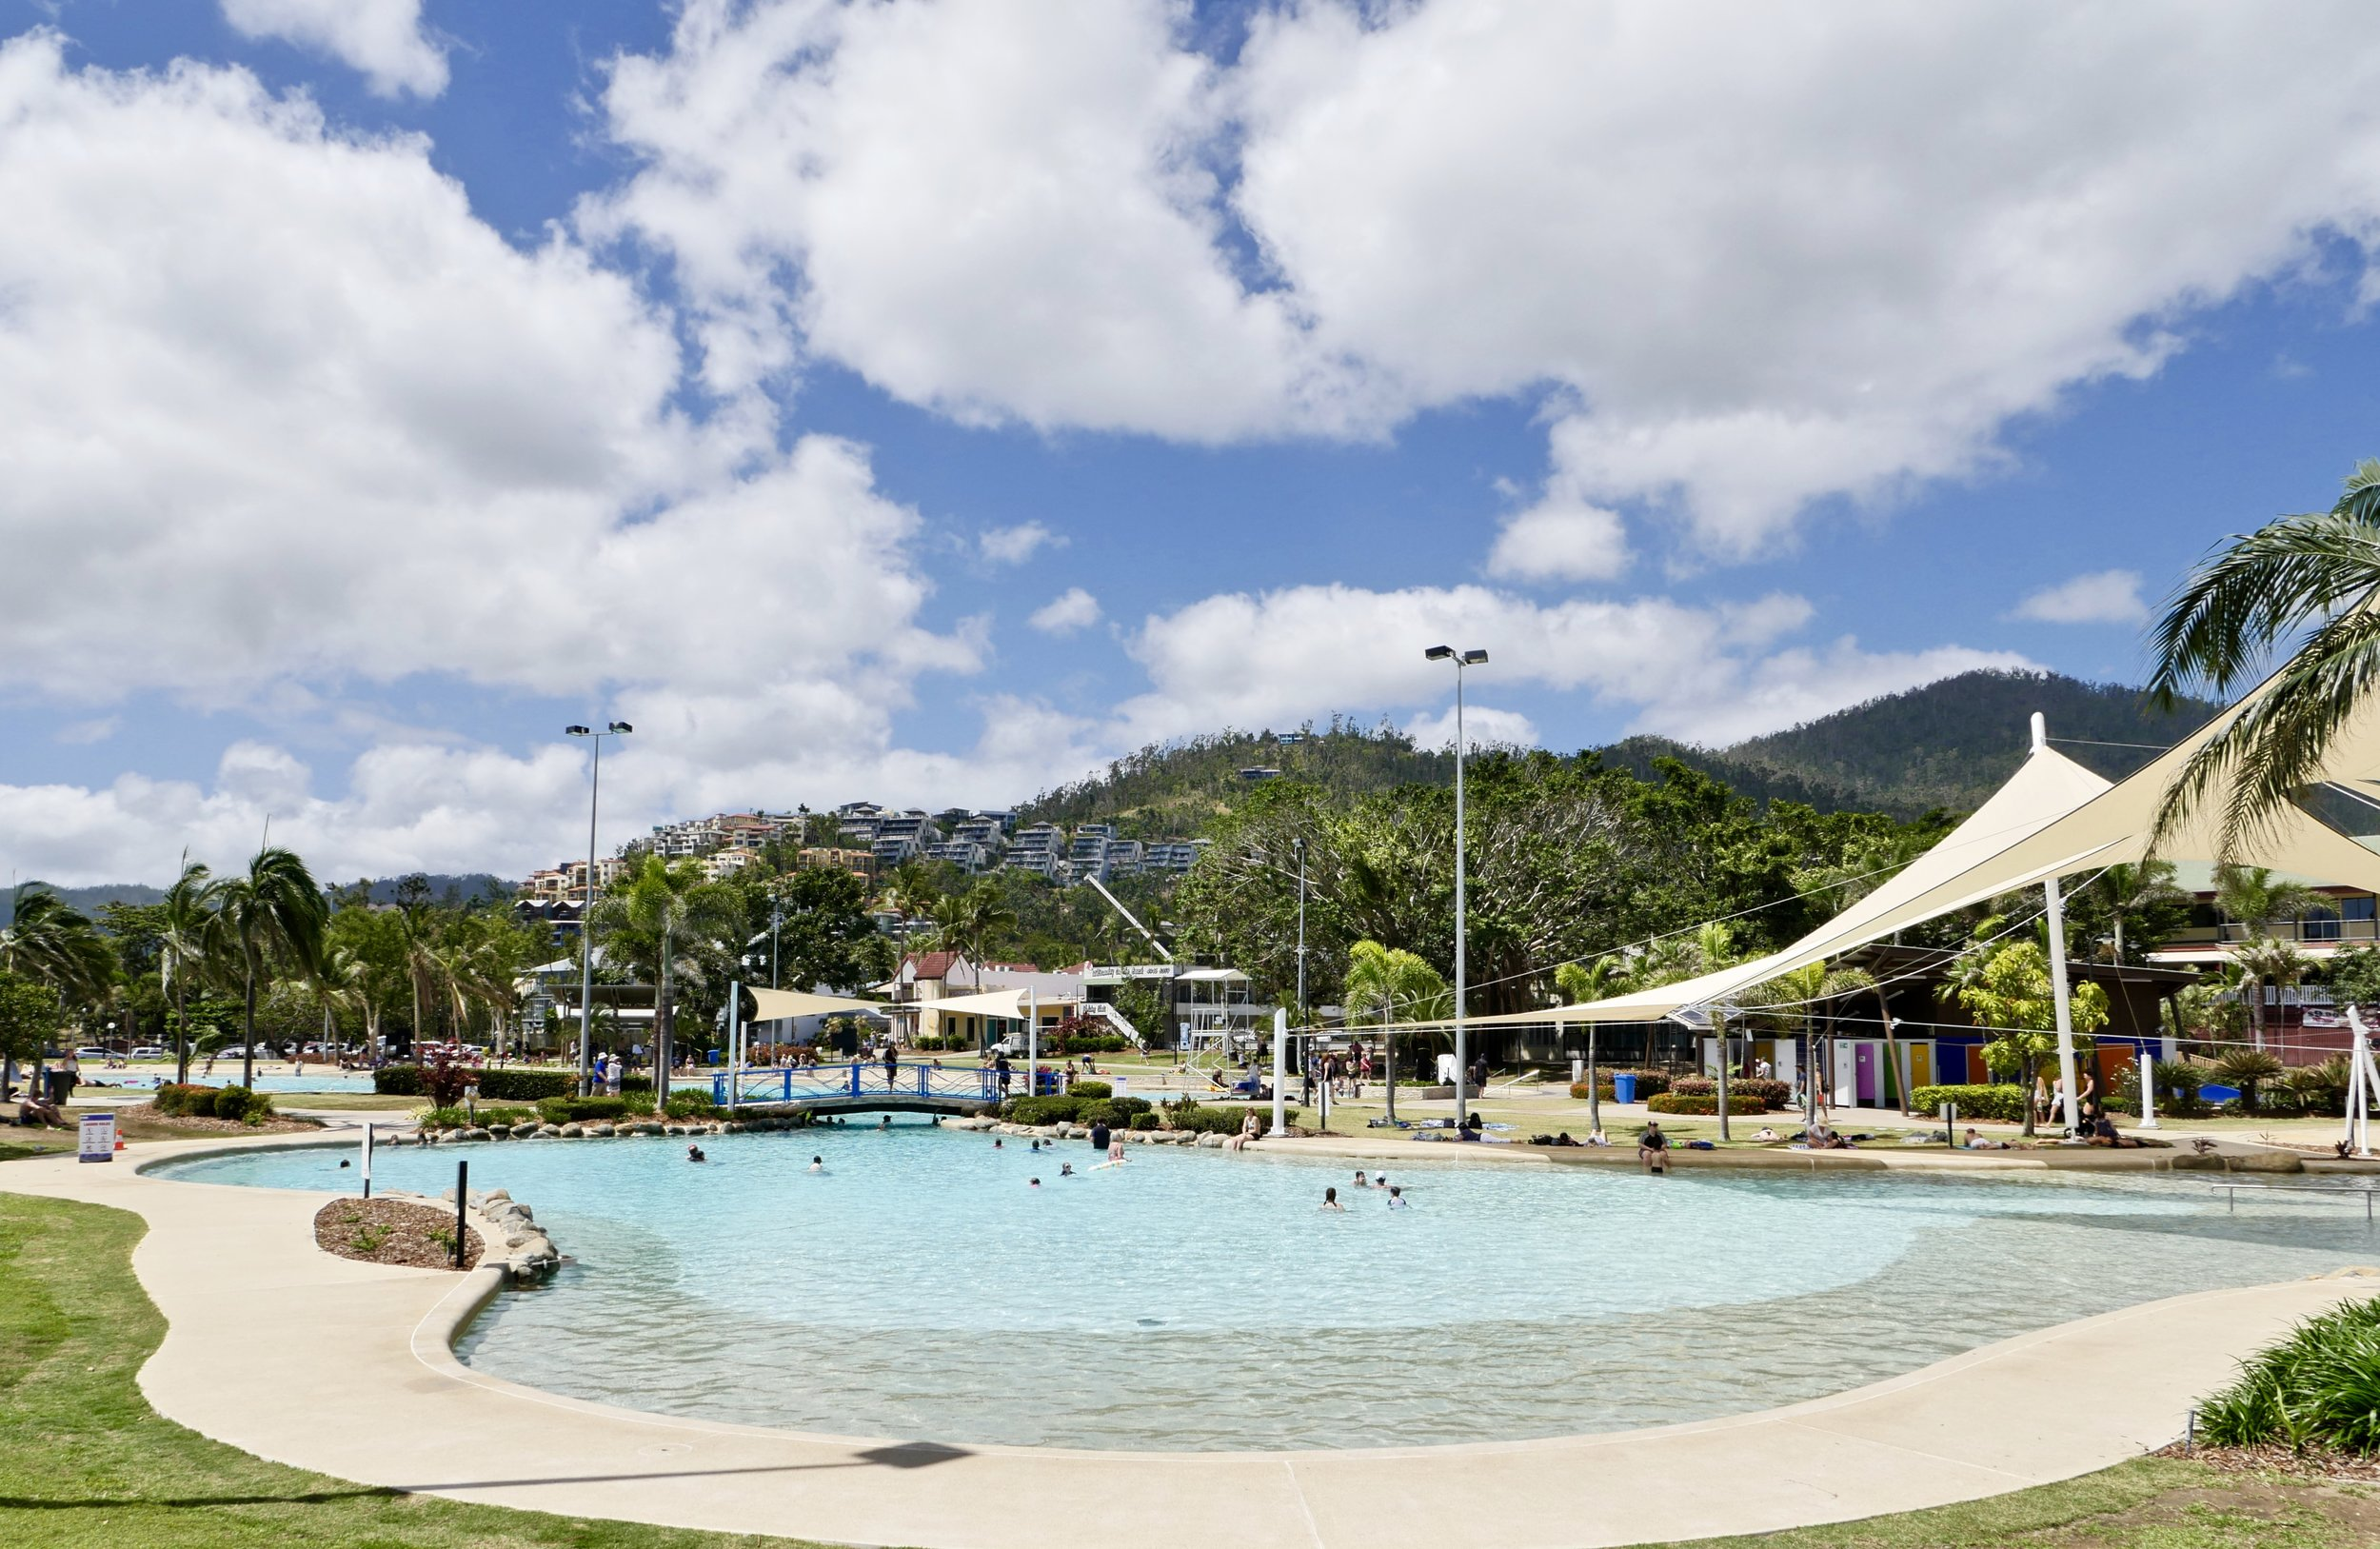 THE AIRLIE BEACH LAGOON - AN ABSOLUTE HOT SPOT FOR TOURISTS AND BACKPACKERS